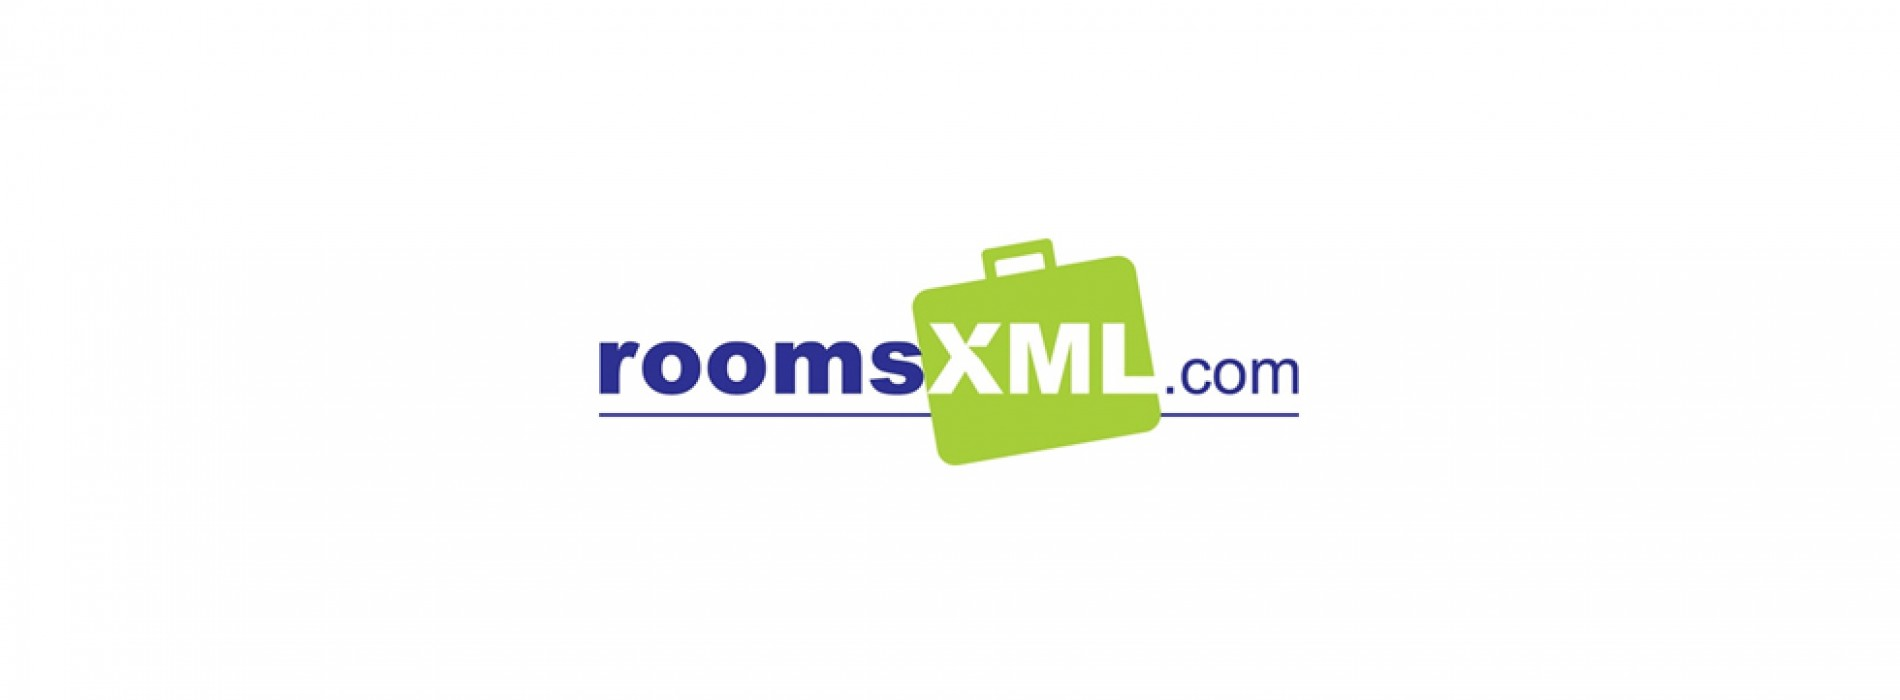 Its upgrade time at roomsXML.com